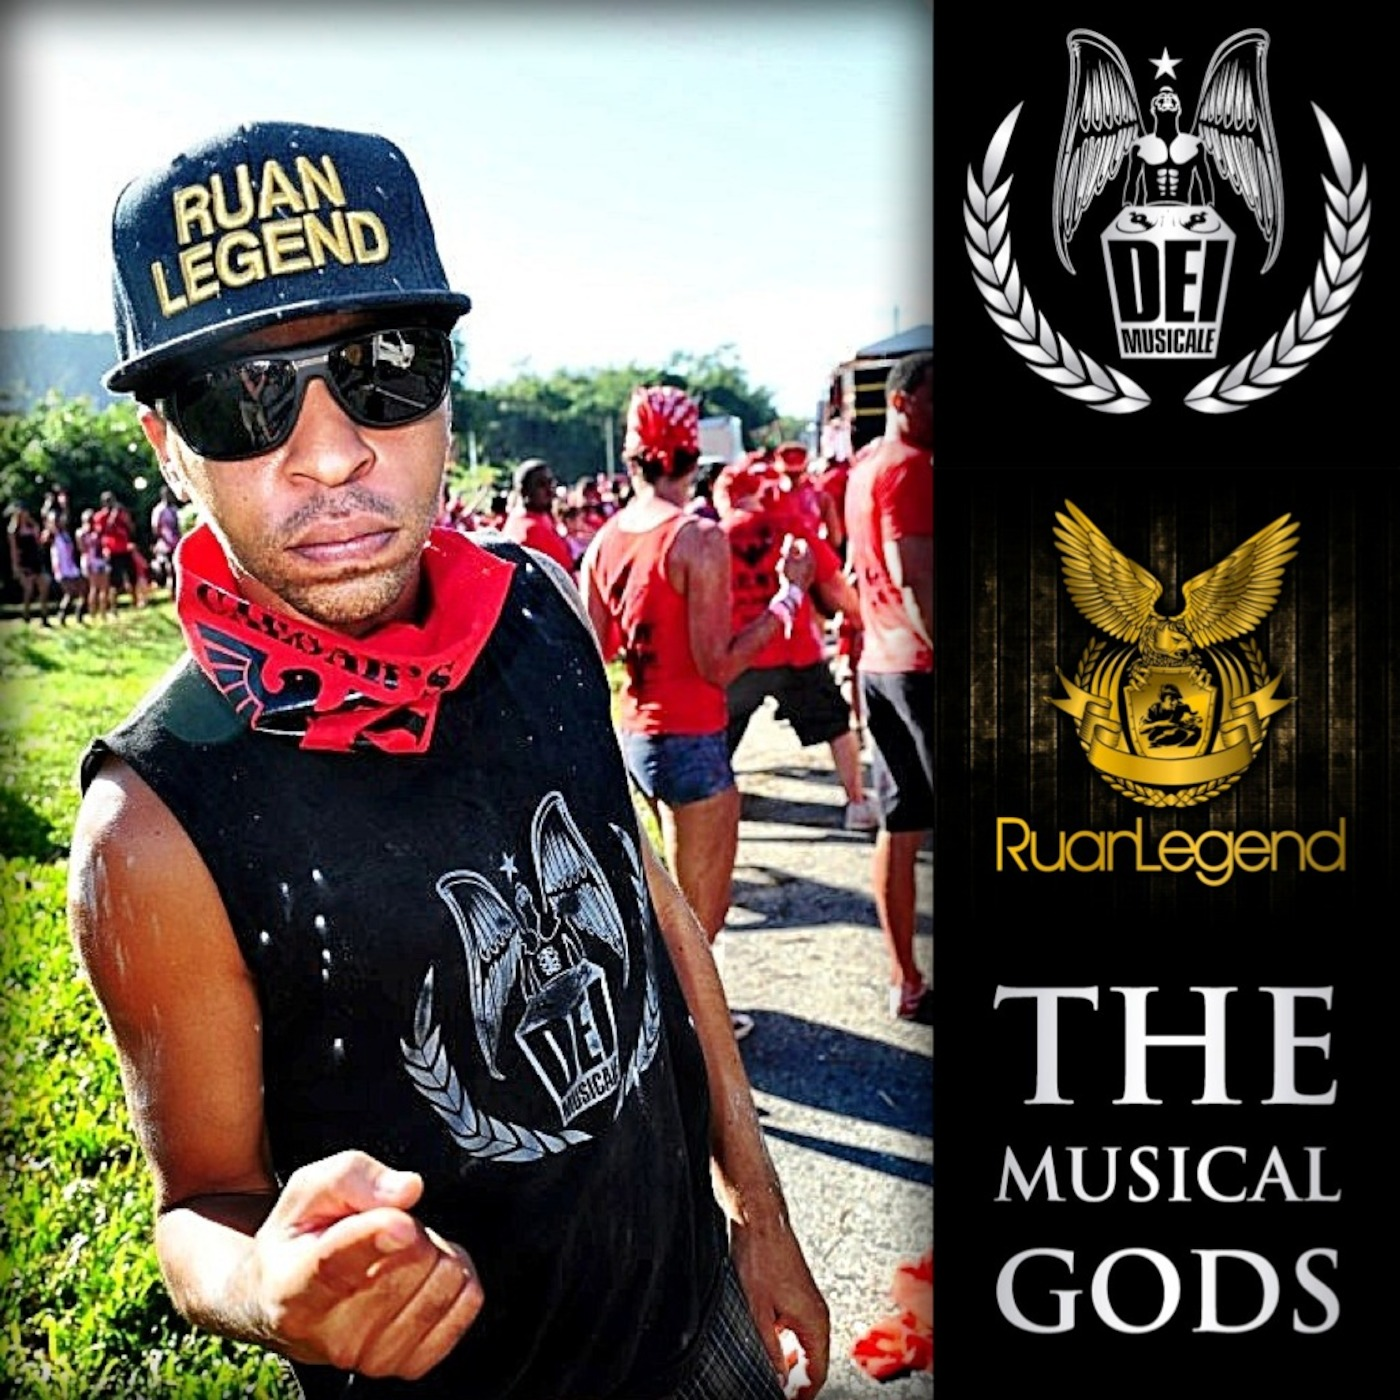 Ruan Legend's Podcast